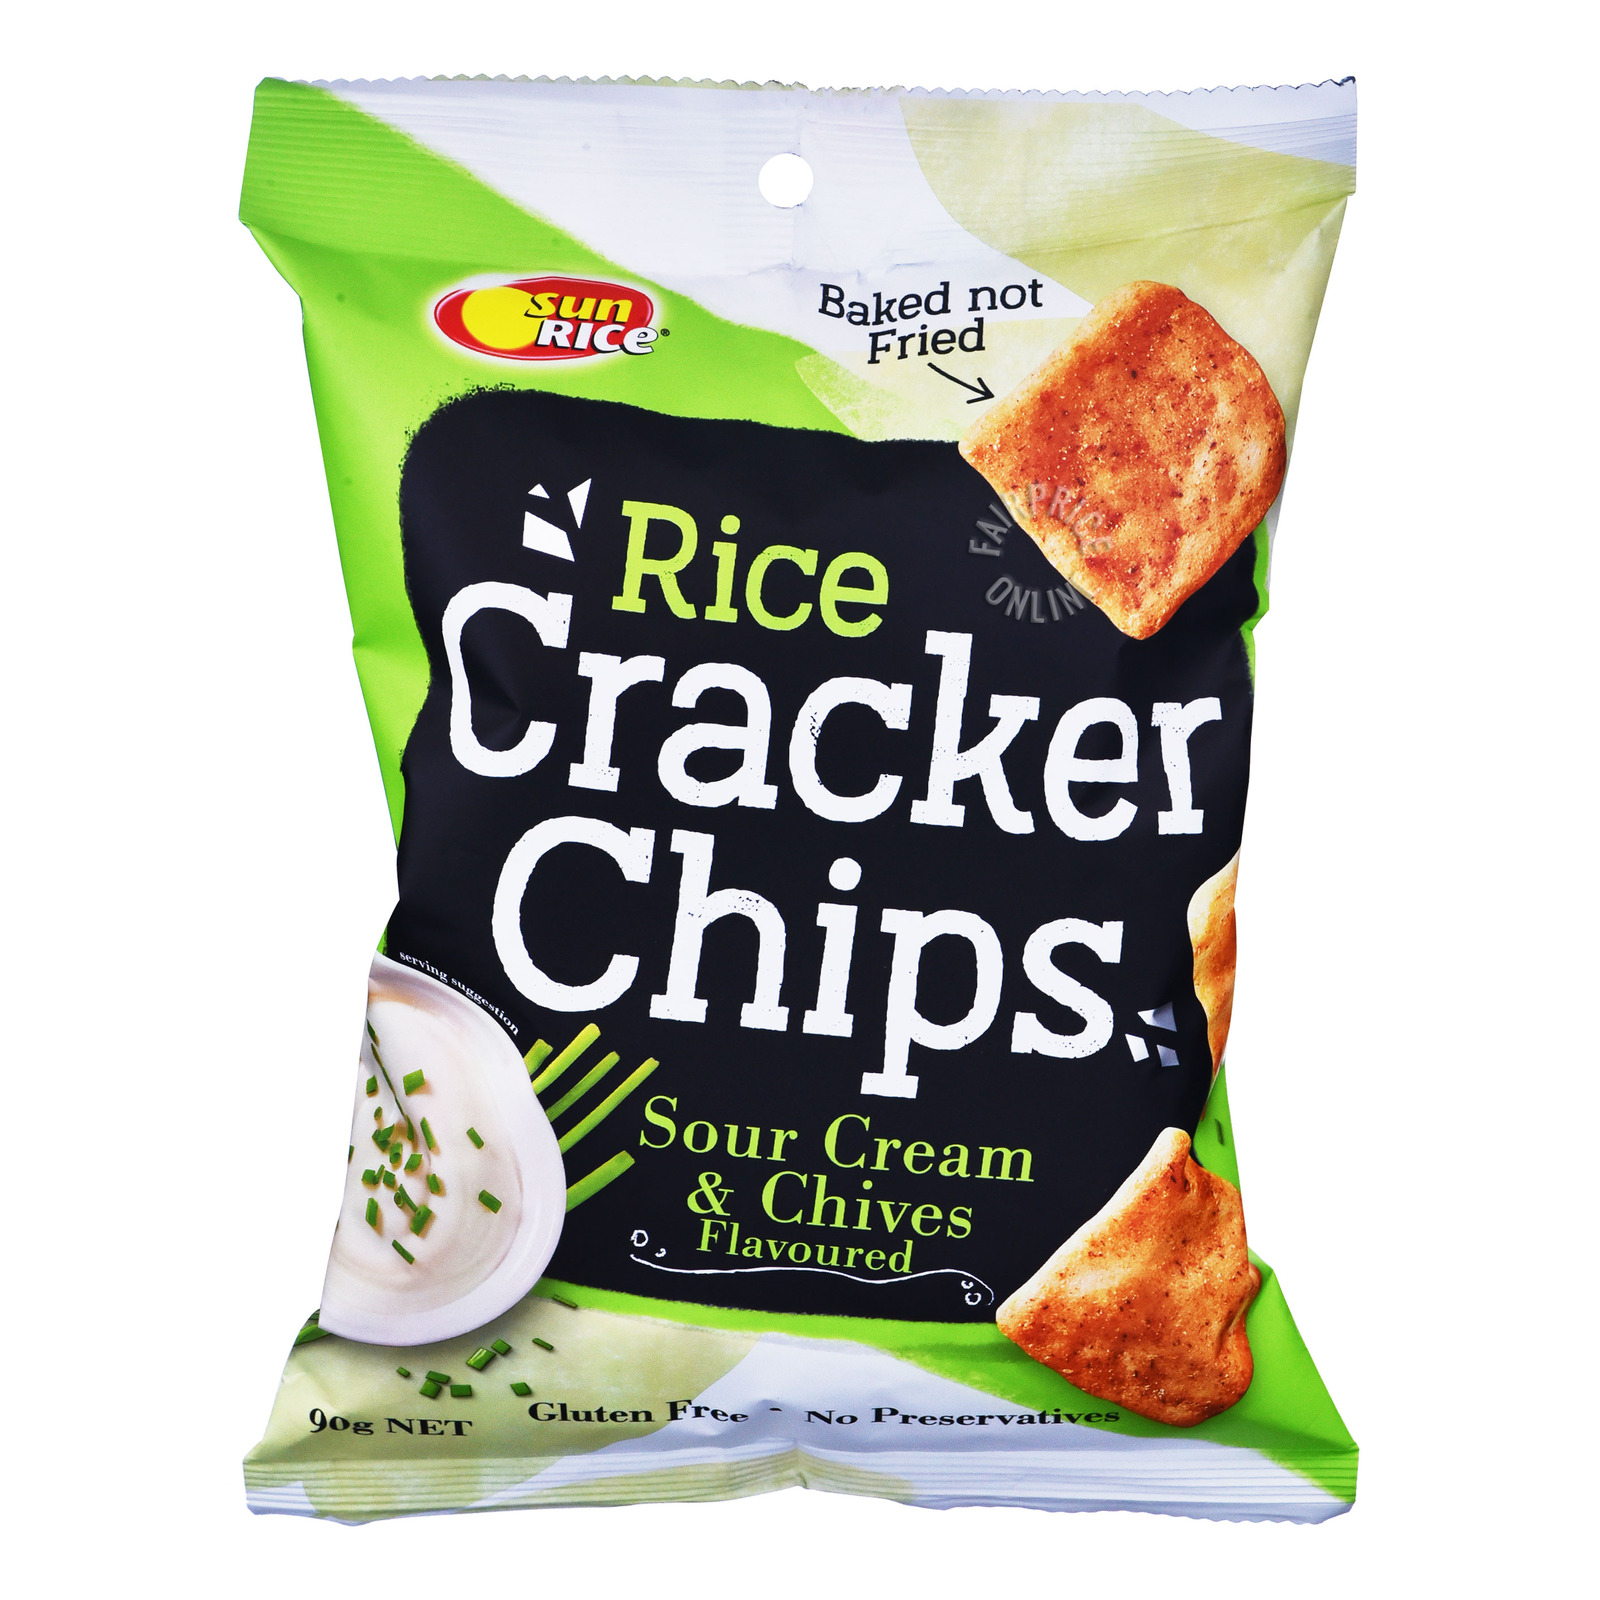 Sun Rice Rice Cracker Chips - Sour Cream & Chives